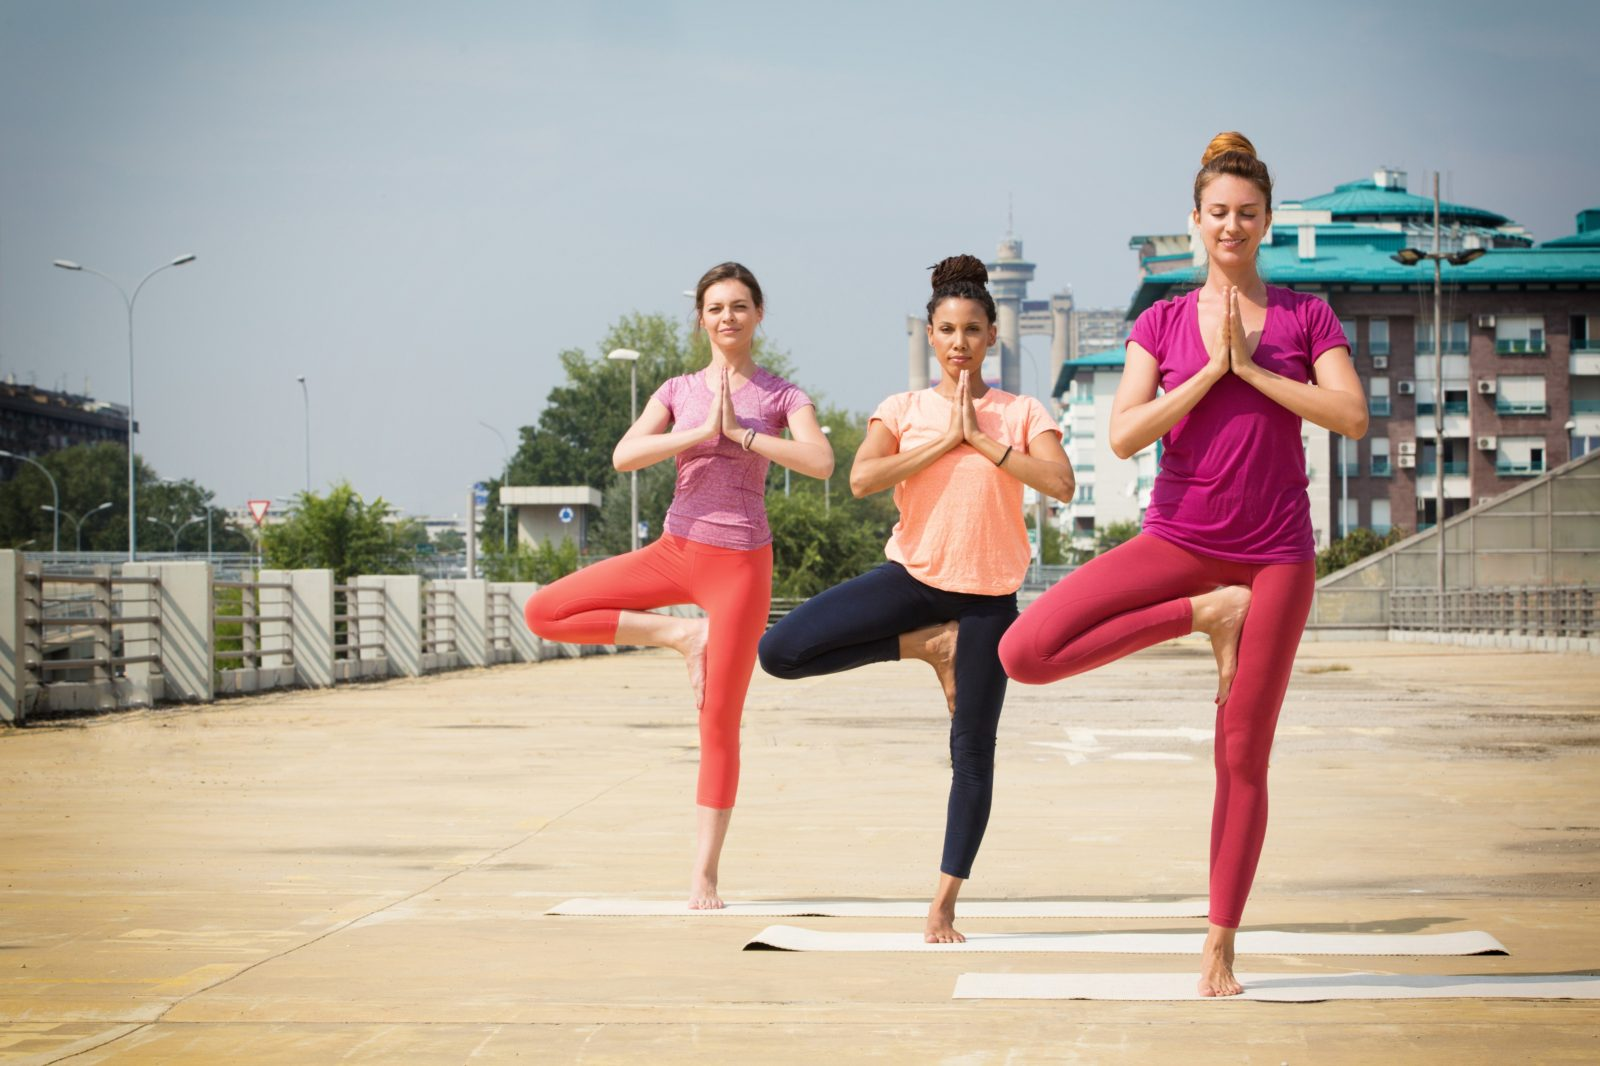 Women doing Yoga in an outdoor neighborhood